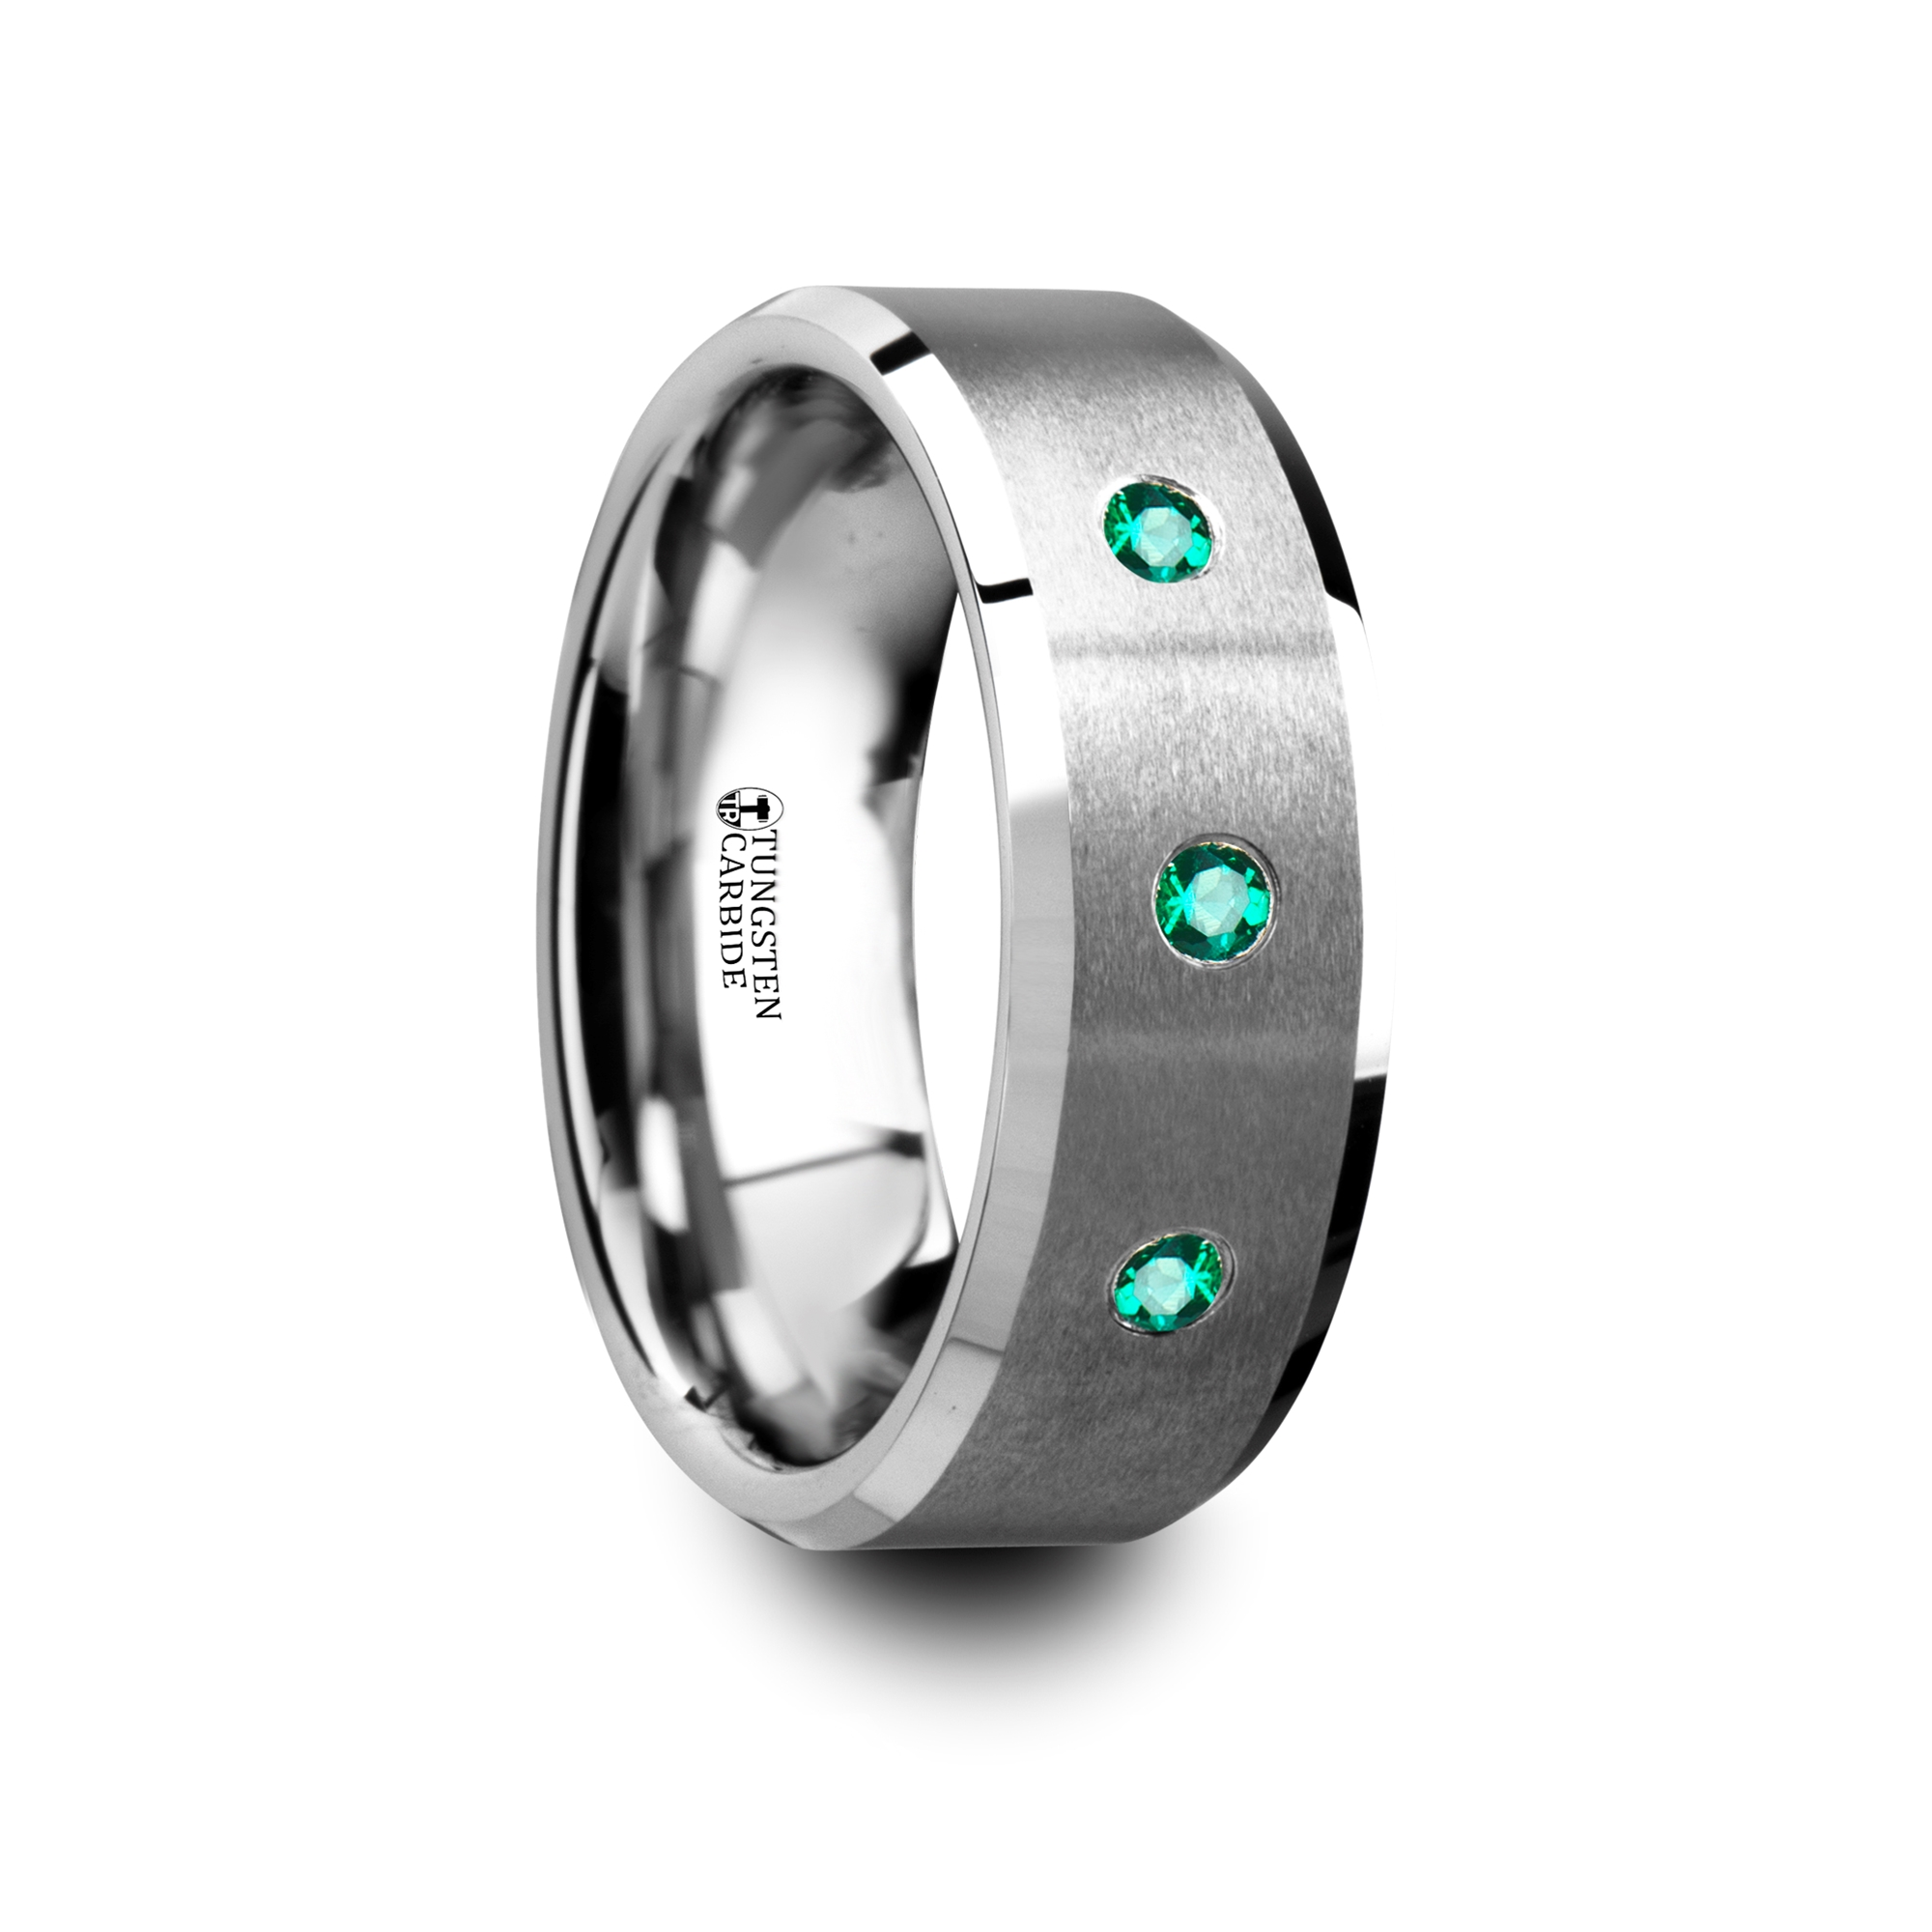 icarus brushed tungsten mens wedding ring with polished beveled edges 3 emeralds 8mm - Tungsten Mens Wedding Rings